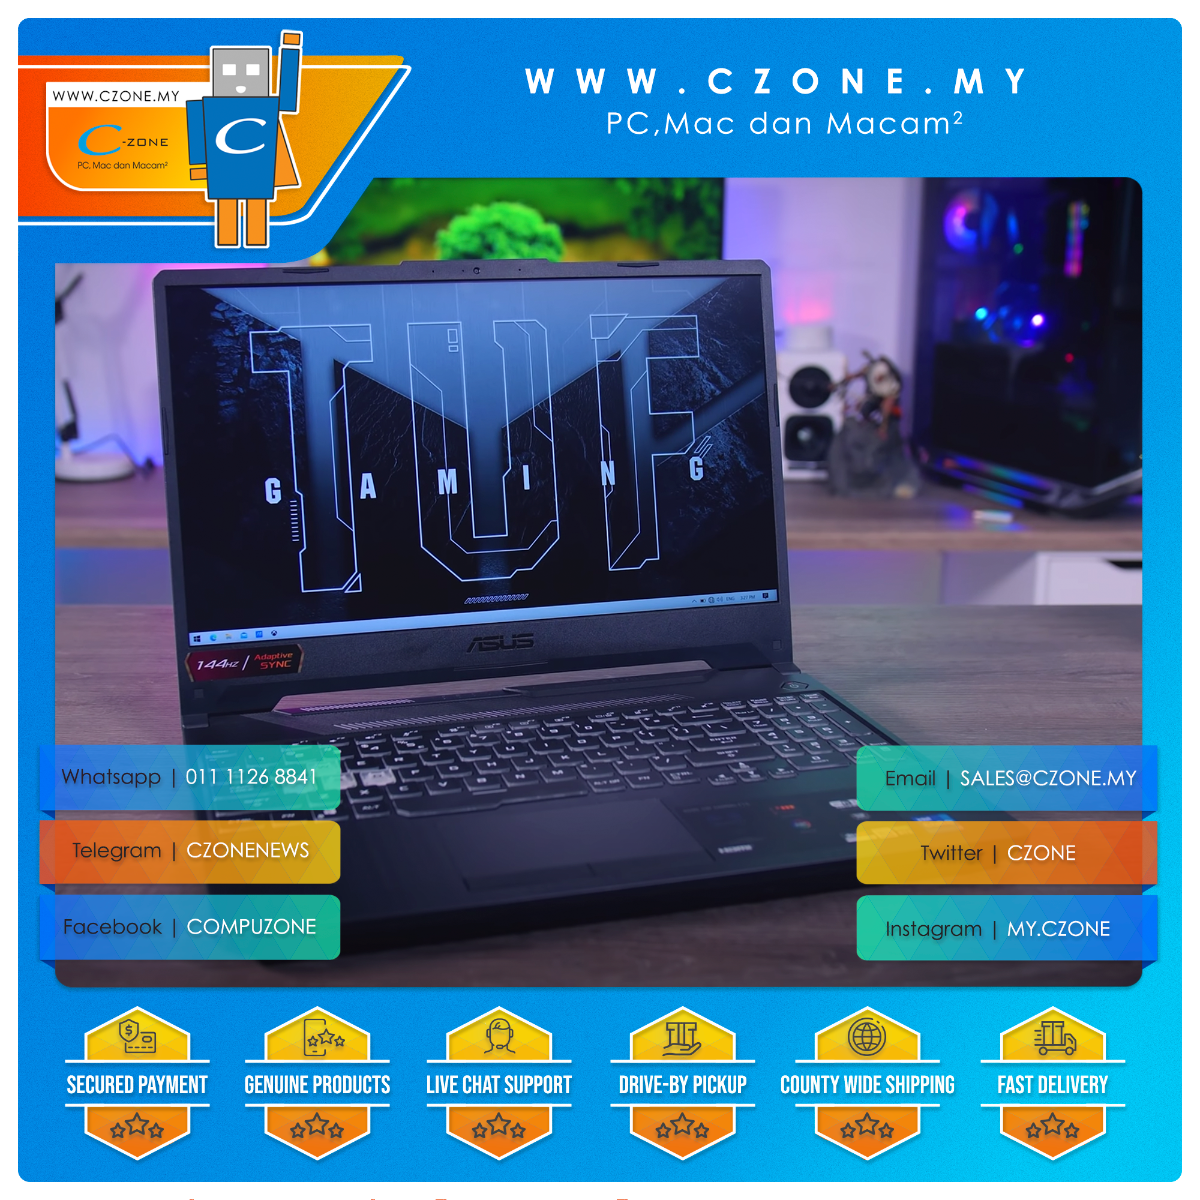 https://czone.my/czone/computer-systems/laptops.html